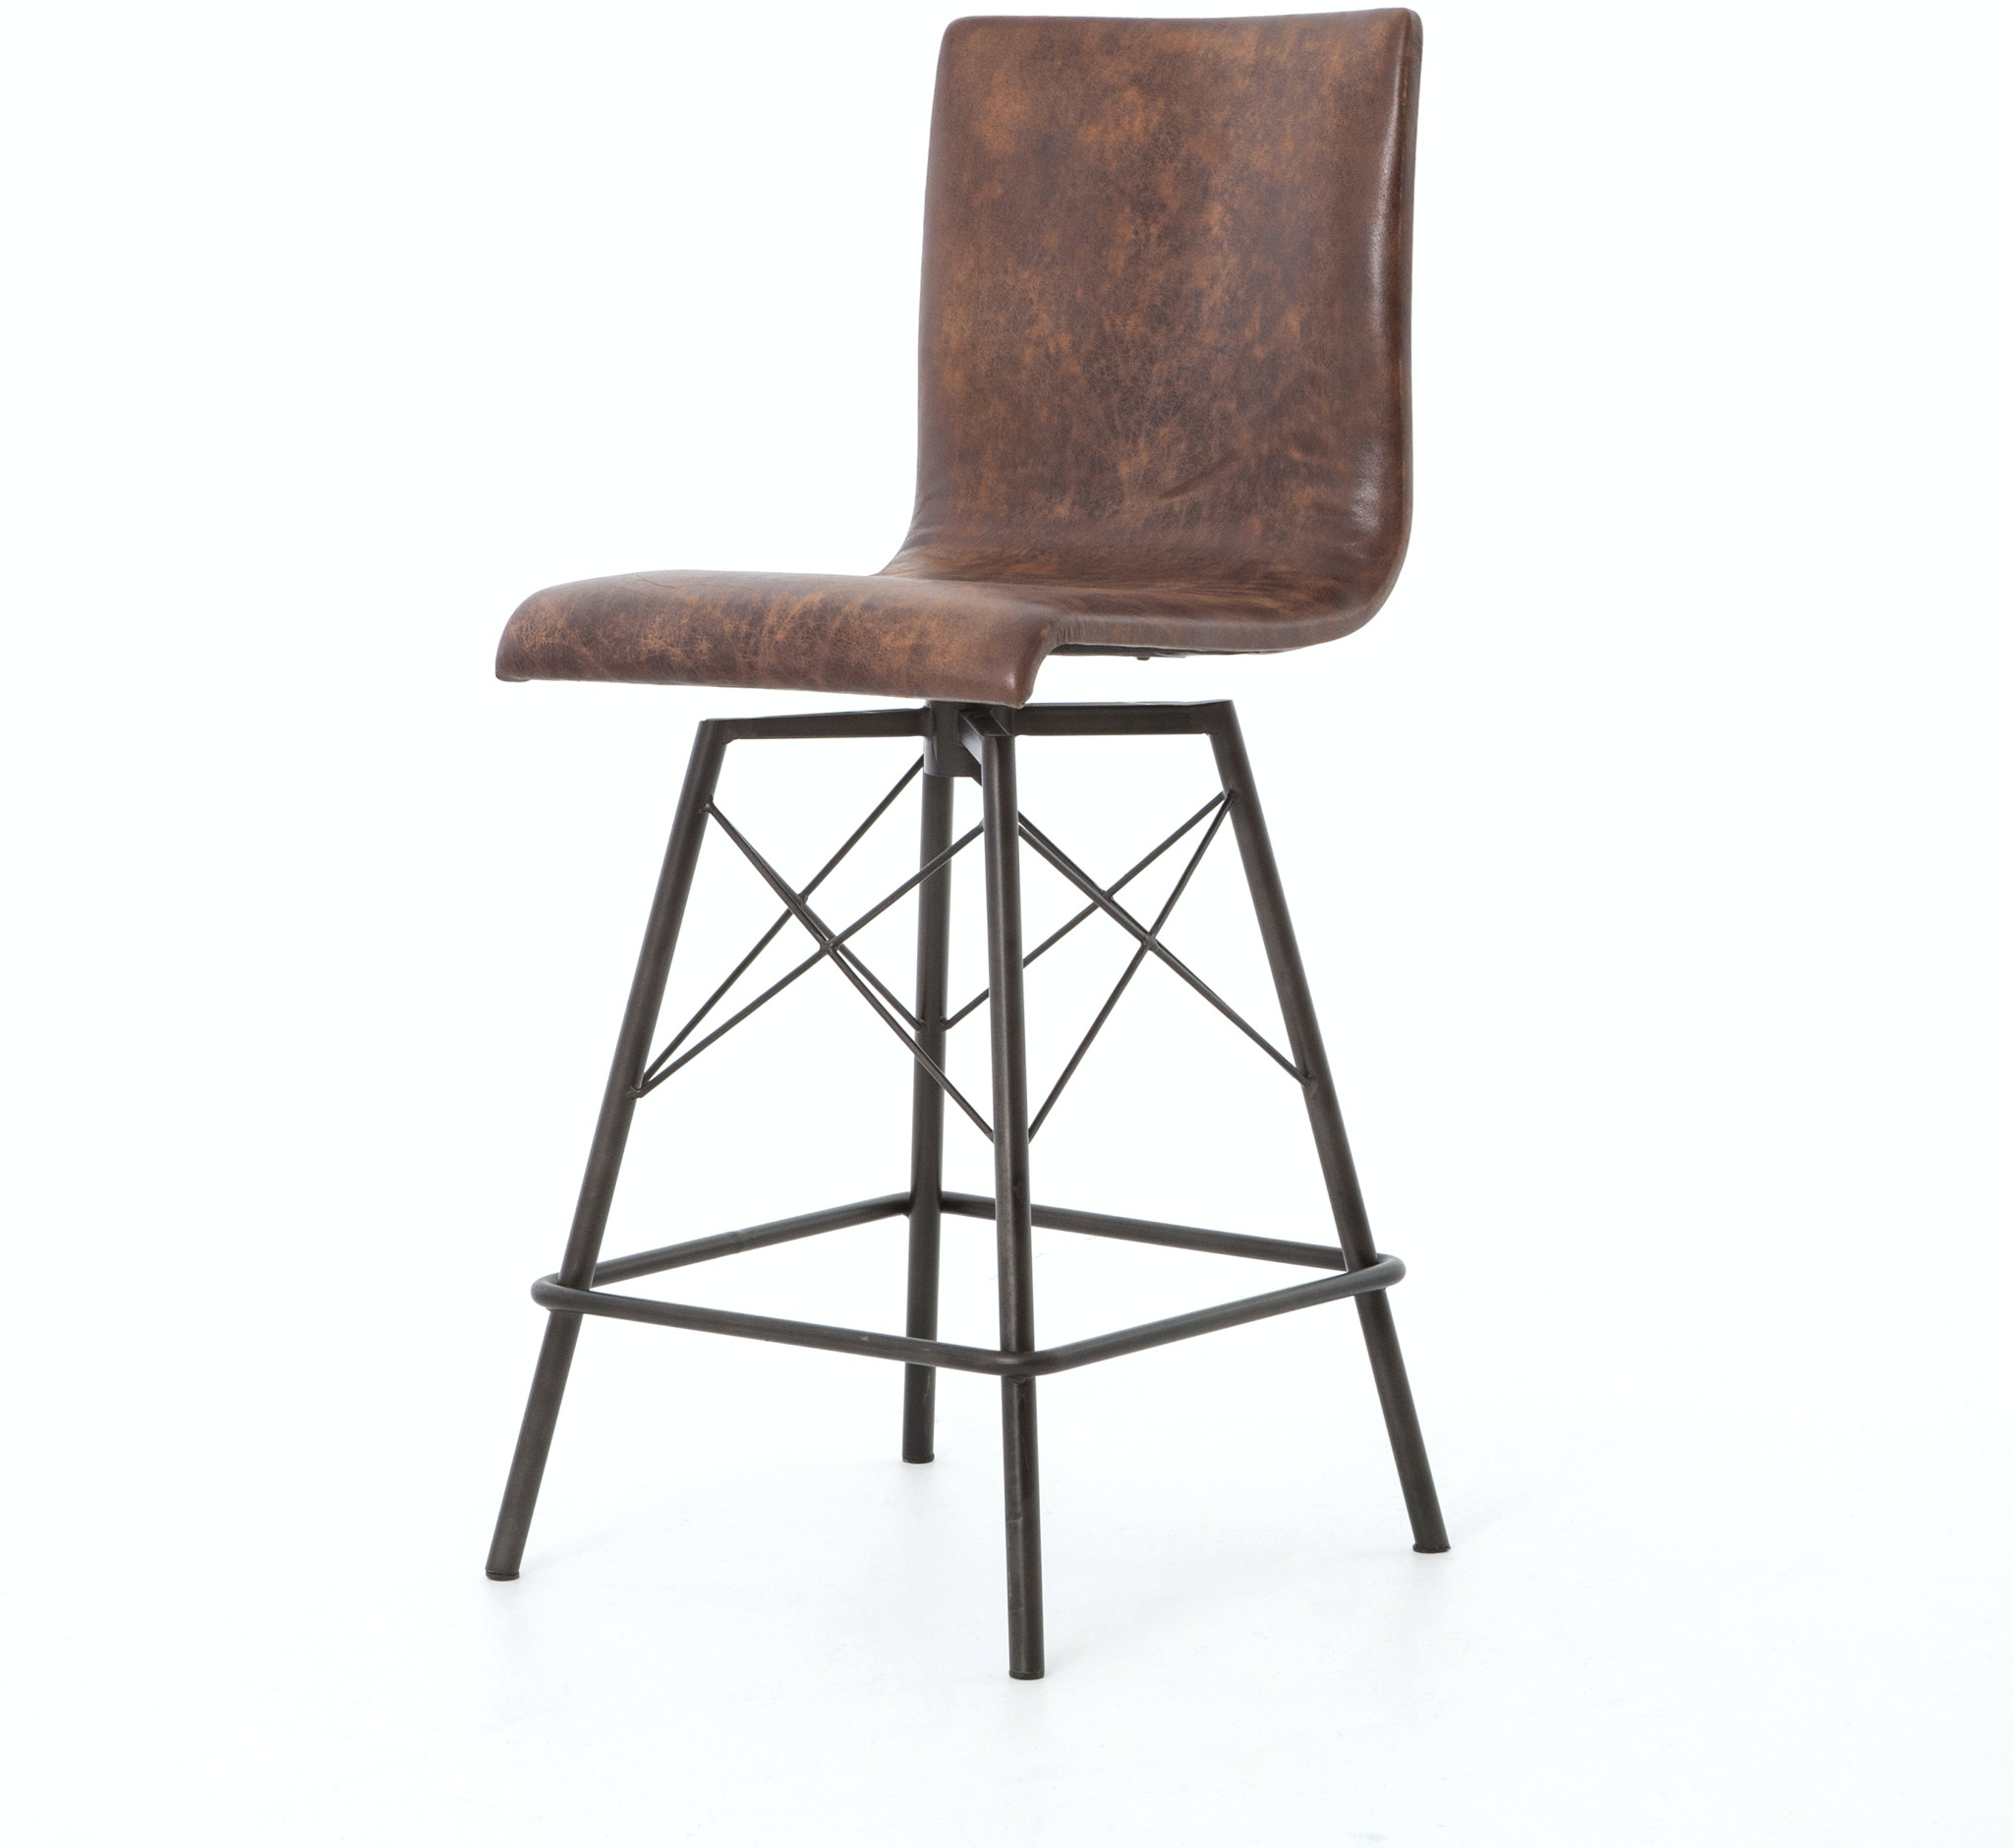 Four Hands Furniture Cird V8 Bar And Game Room Diaw Counter Stool Havana Waxed Black